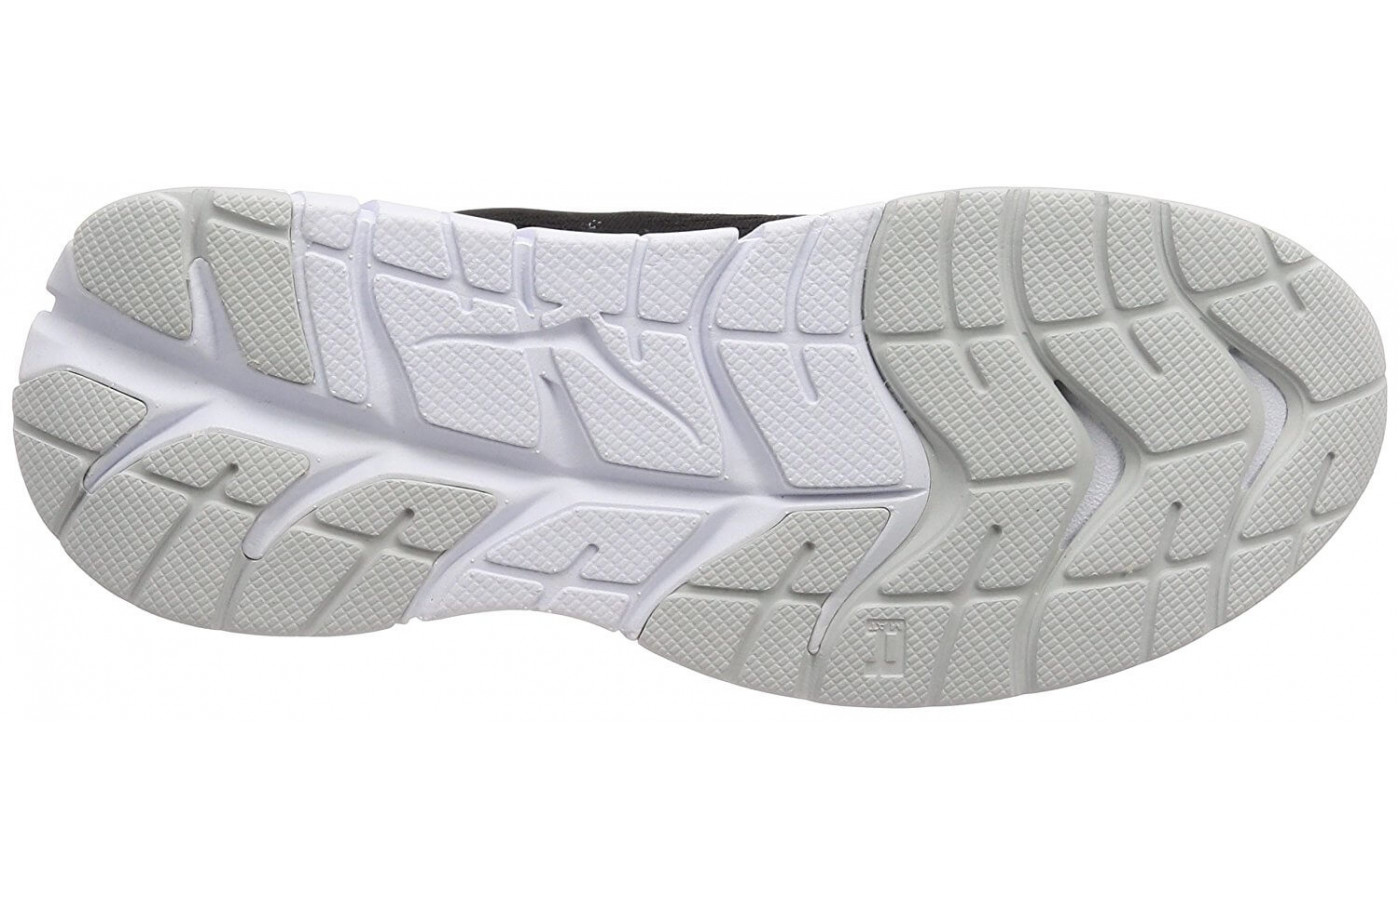 The Hoka One One sole